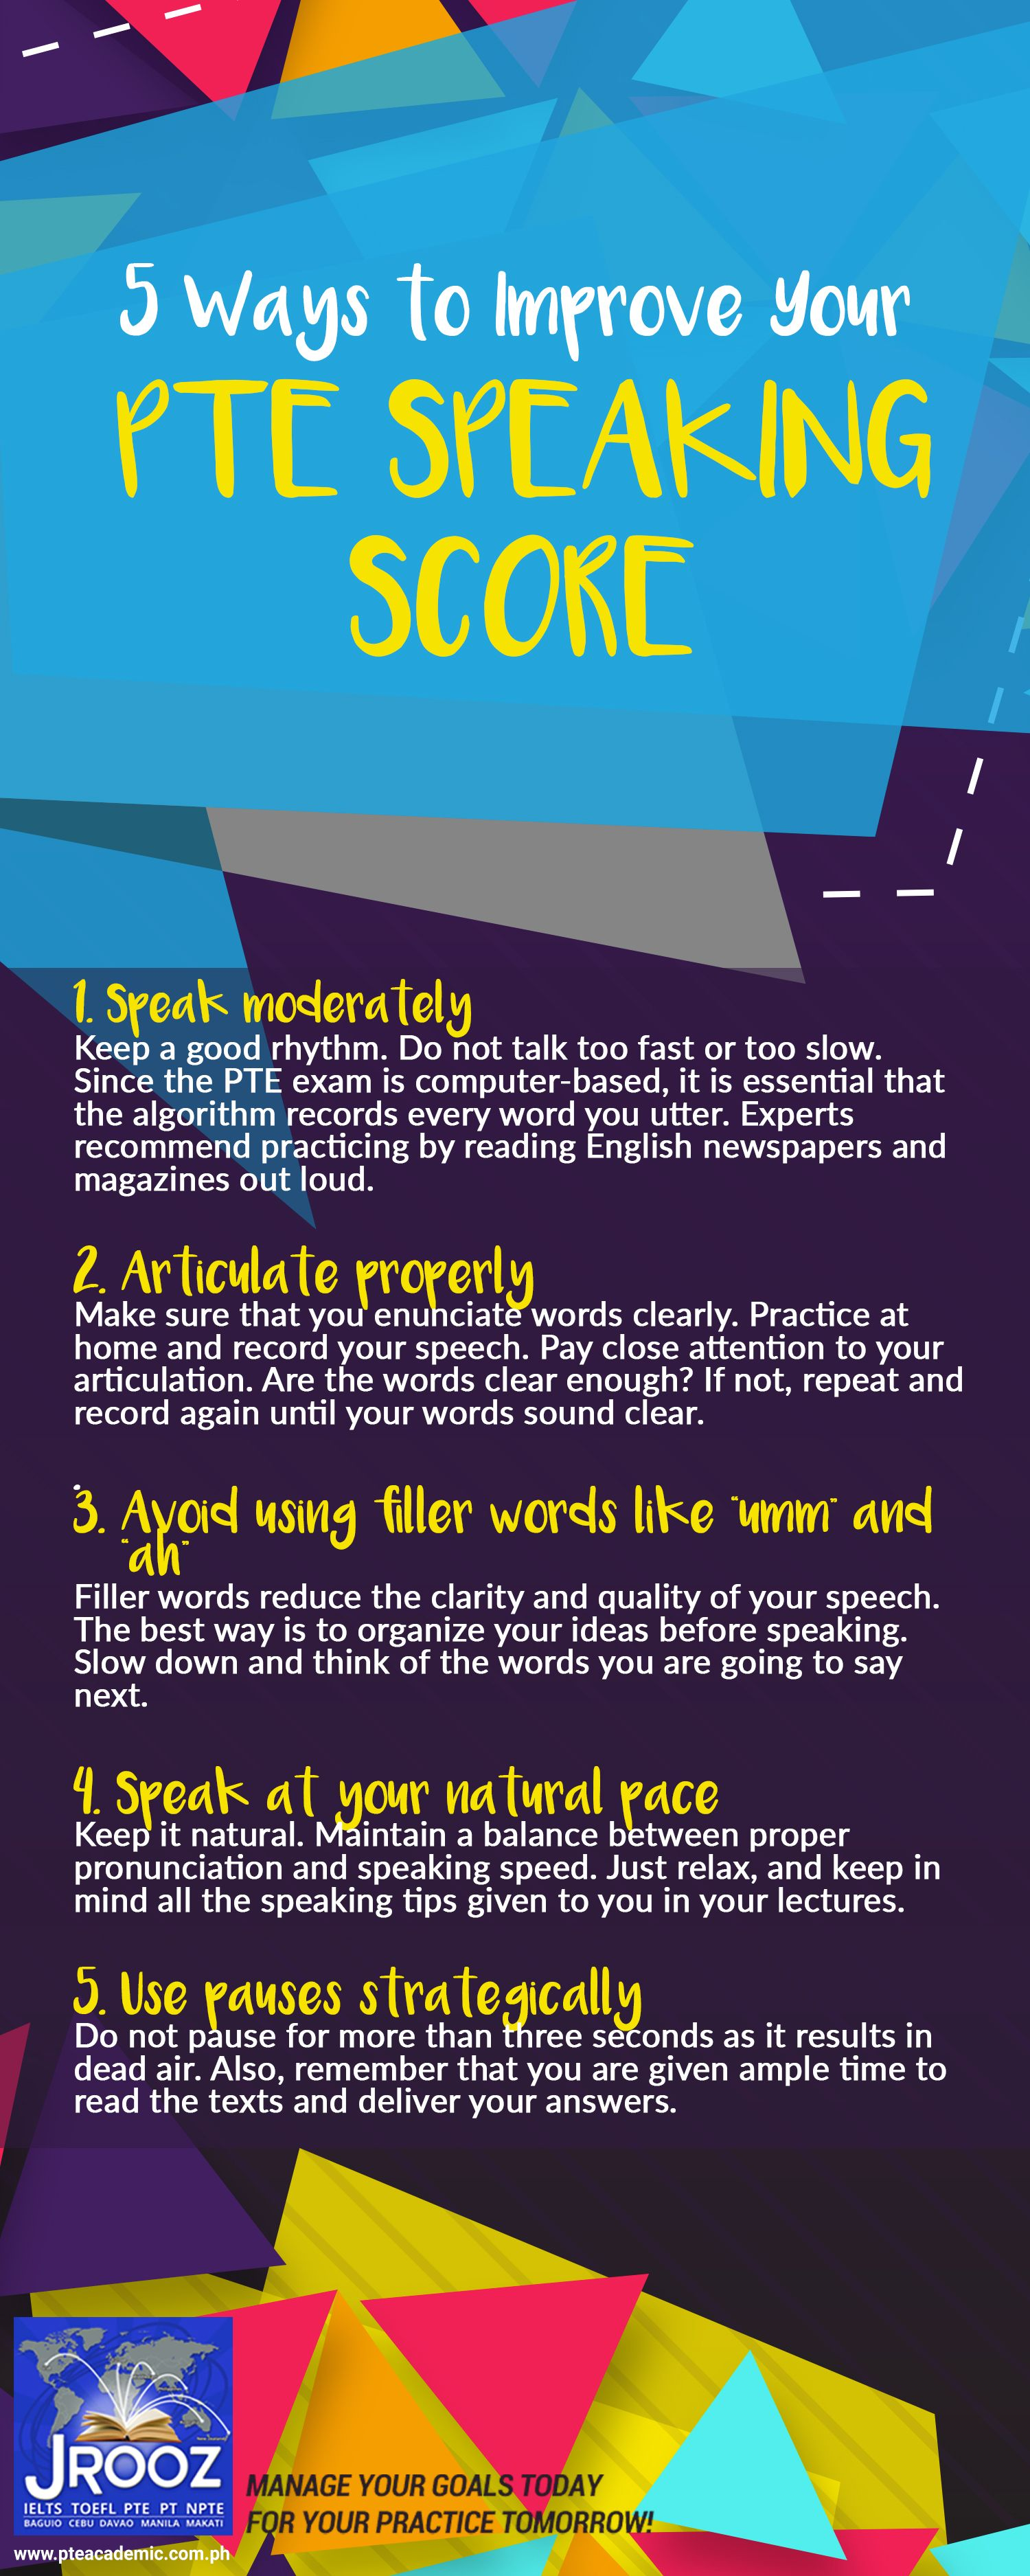 5 Ways to Improve Your PTE Speaking Score - In preparation